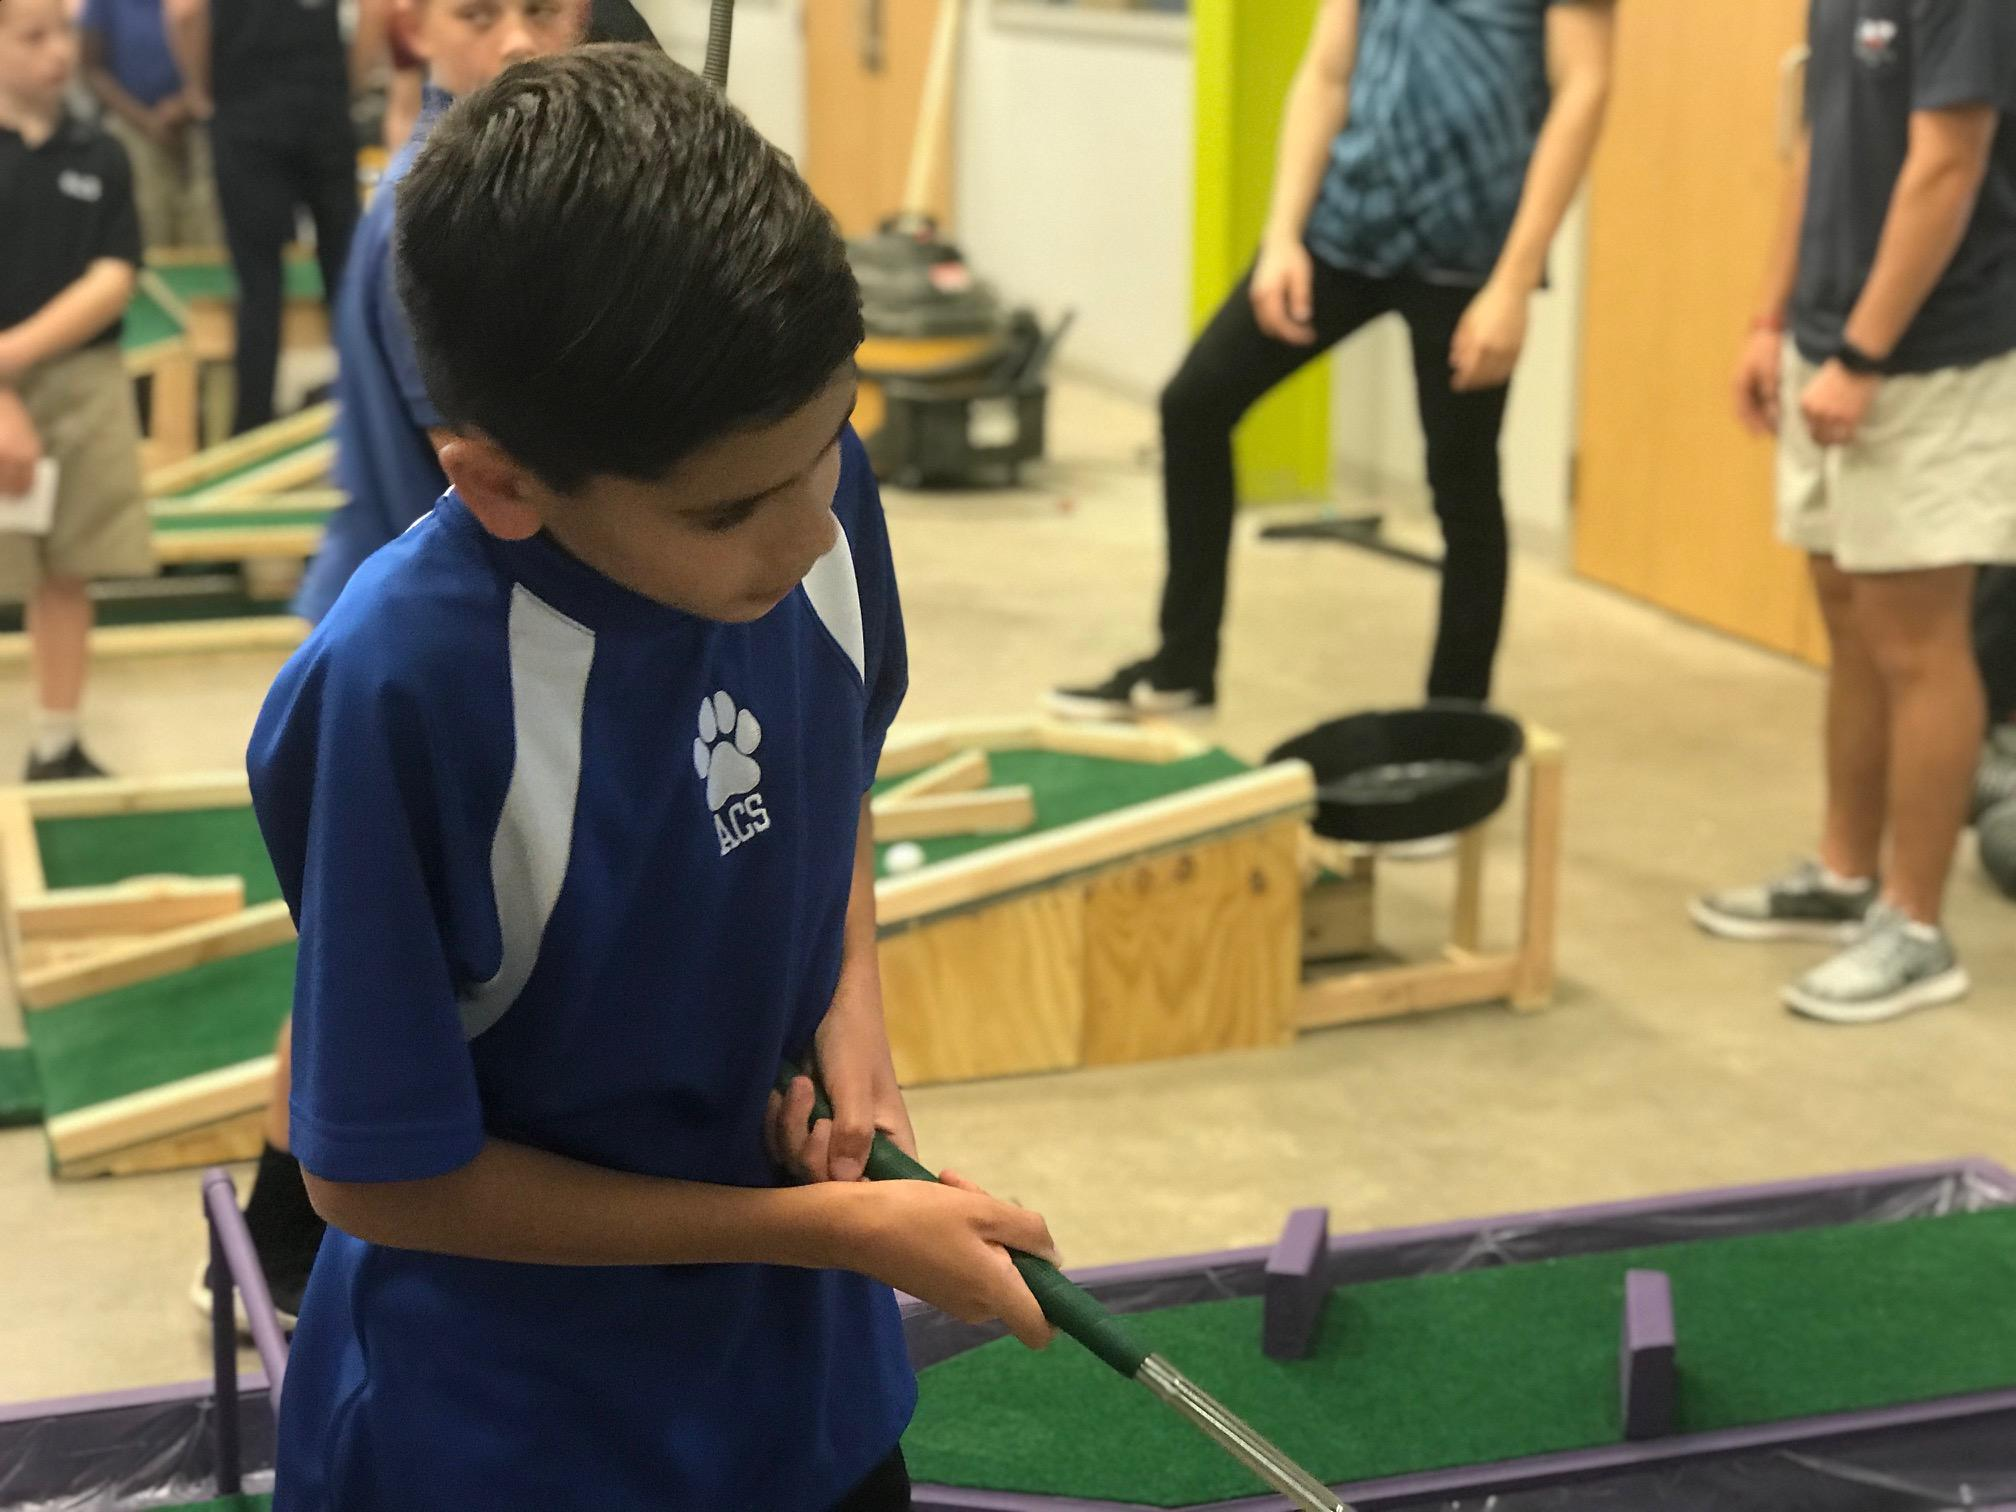 acu-students-build-mini-golf-holes-op-2-cp-1508452333697-9035307-ver1-0.jpg